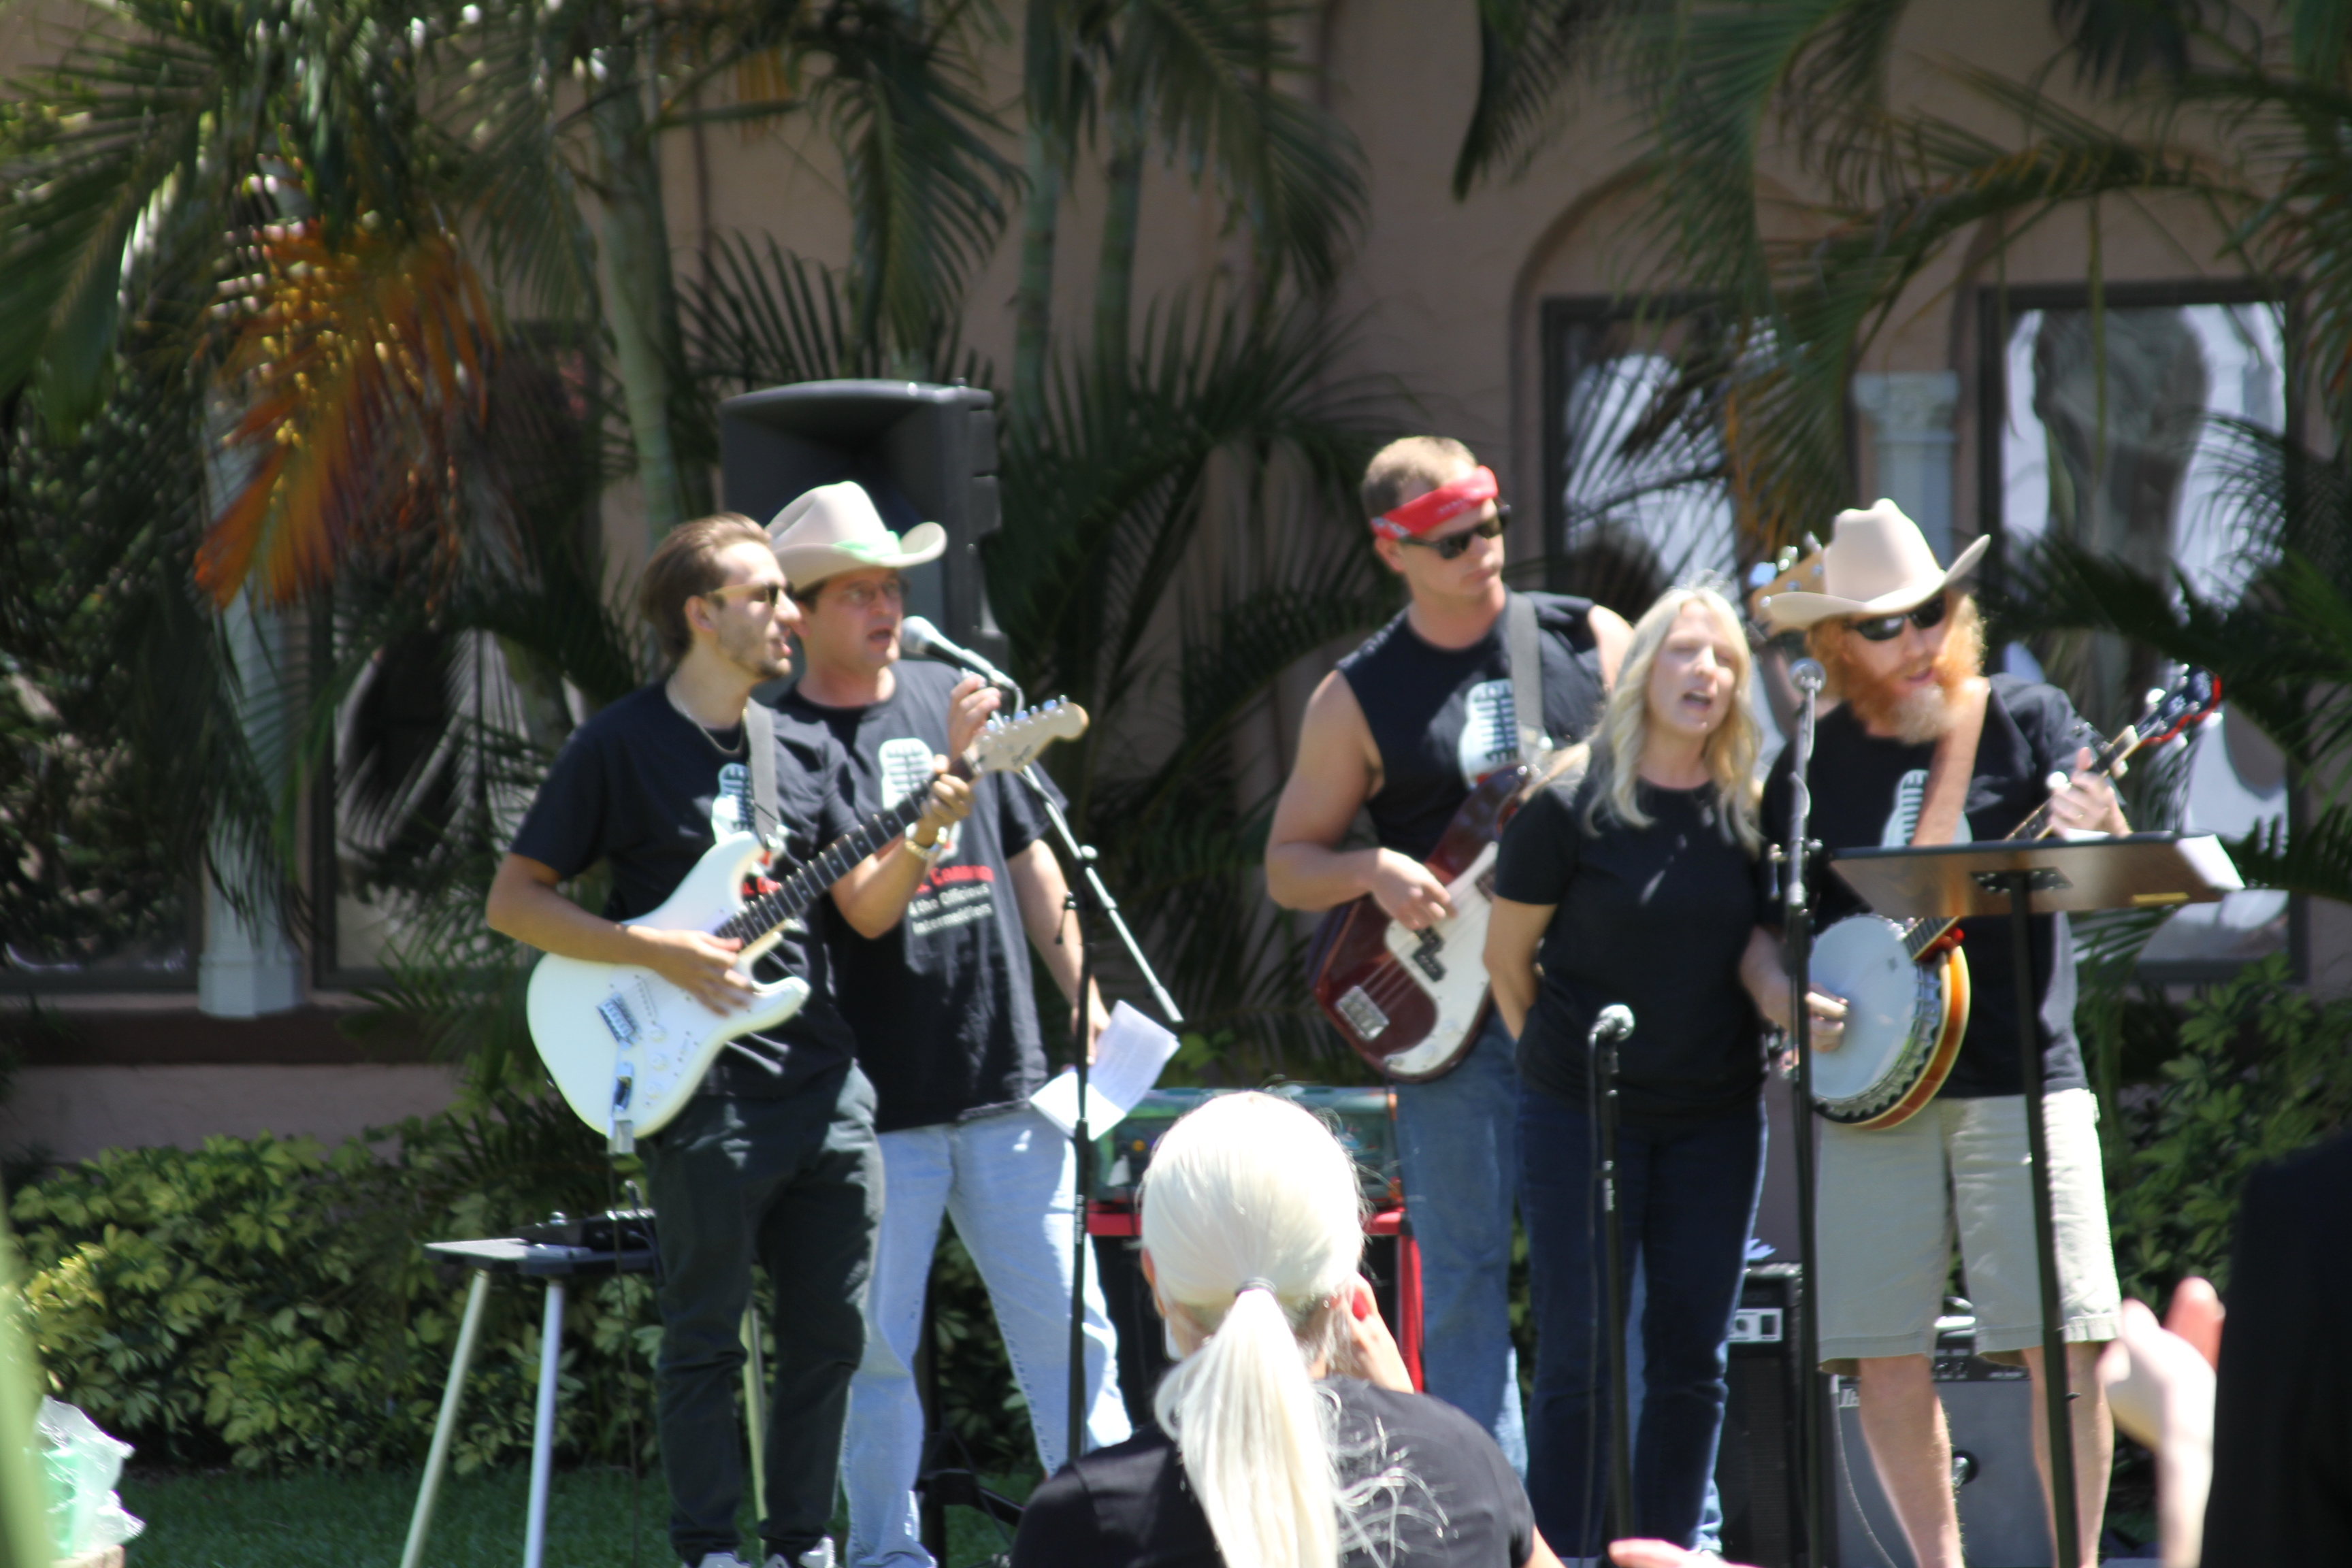 Professors Gardner, Long and friends rocked the Plaza Mayor Courtyard for Earth Day on Stetson's Gulfport campus.